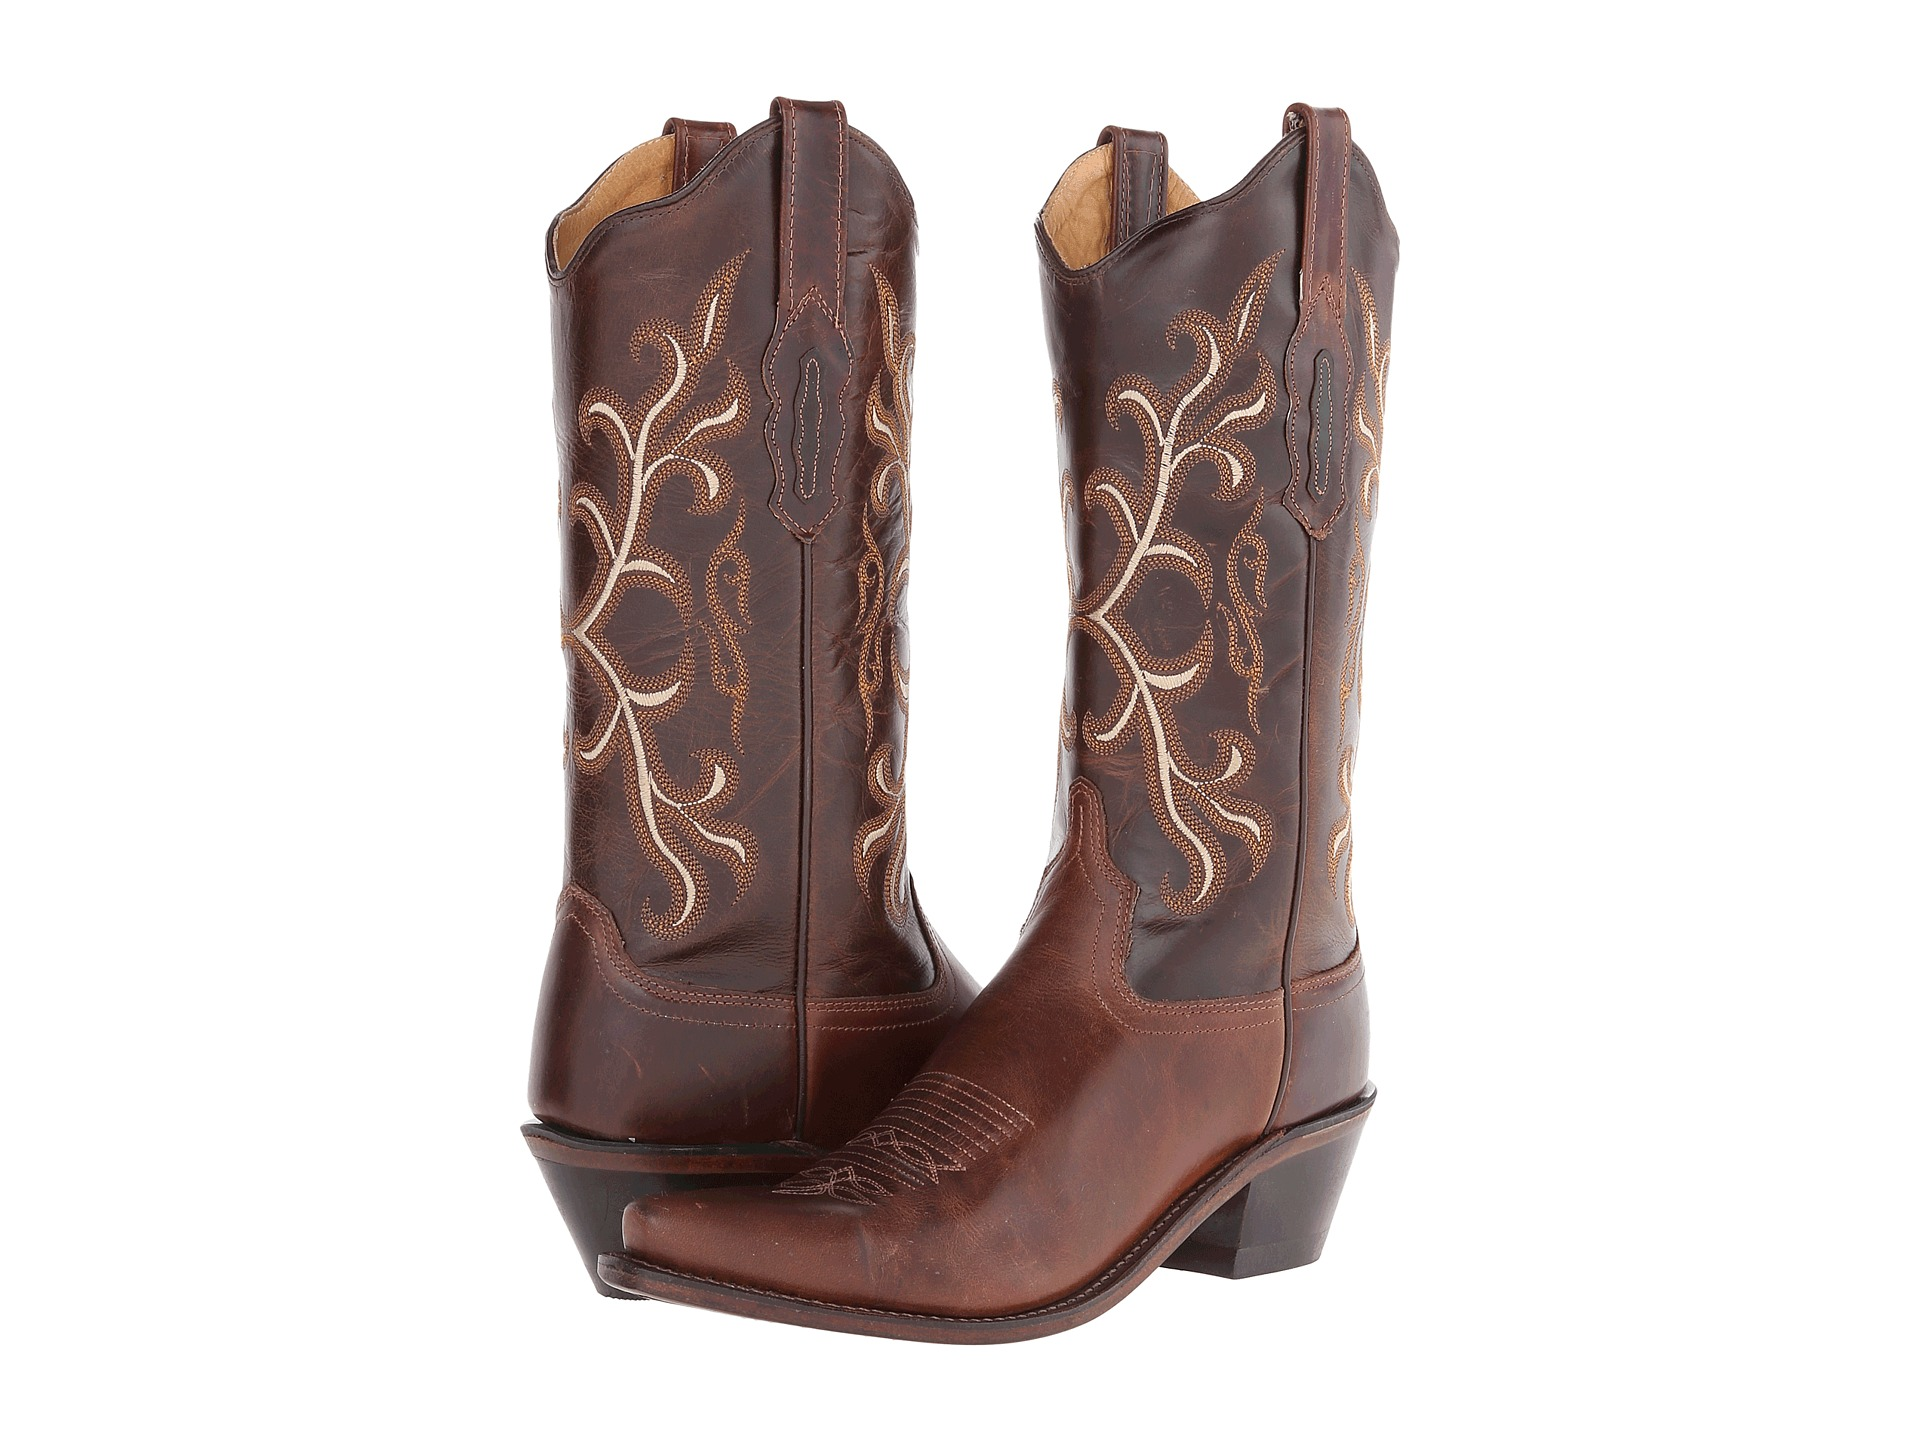 west boots lf1571 brown brown zappos free